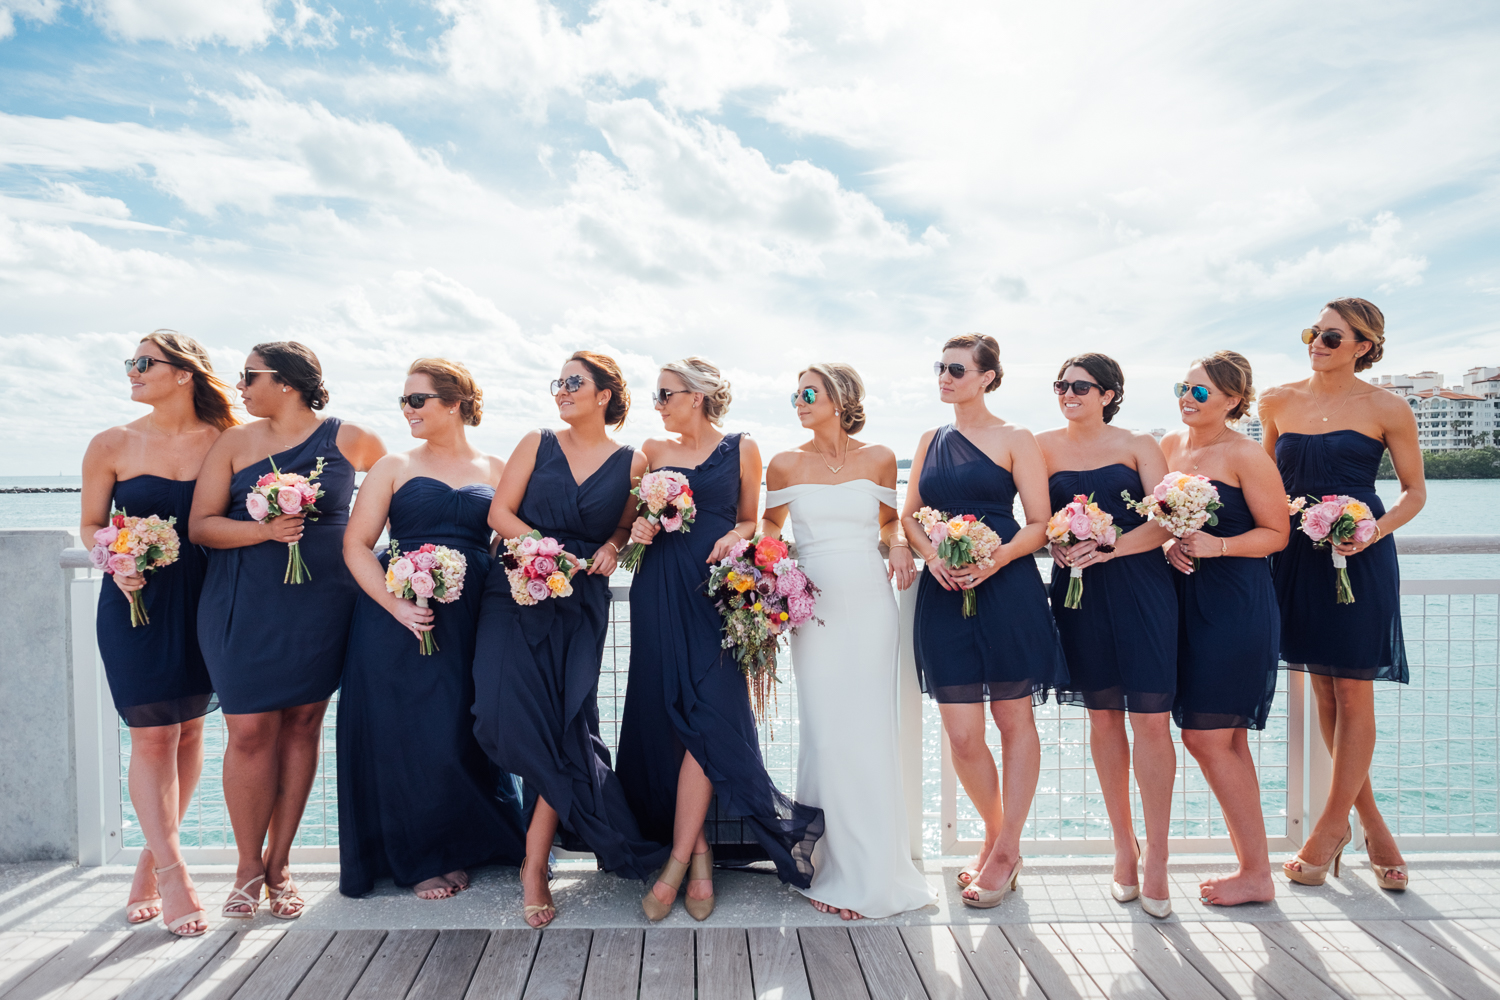 Jessenia Gonzalez Photography-South Point Park-Miami Beach-Wedding-Bridesmaids-groomsmen (20 of 48).jpg